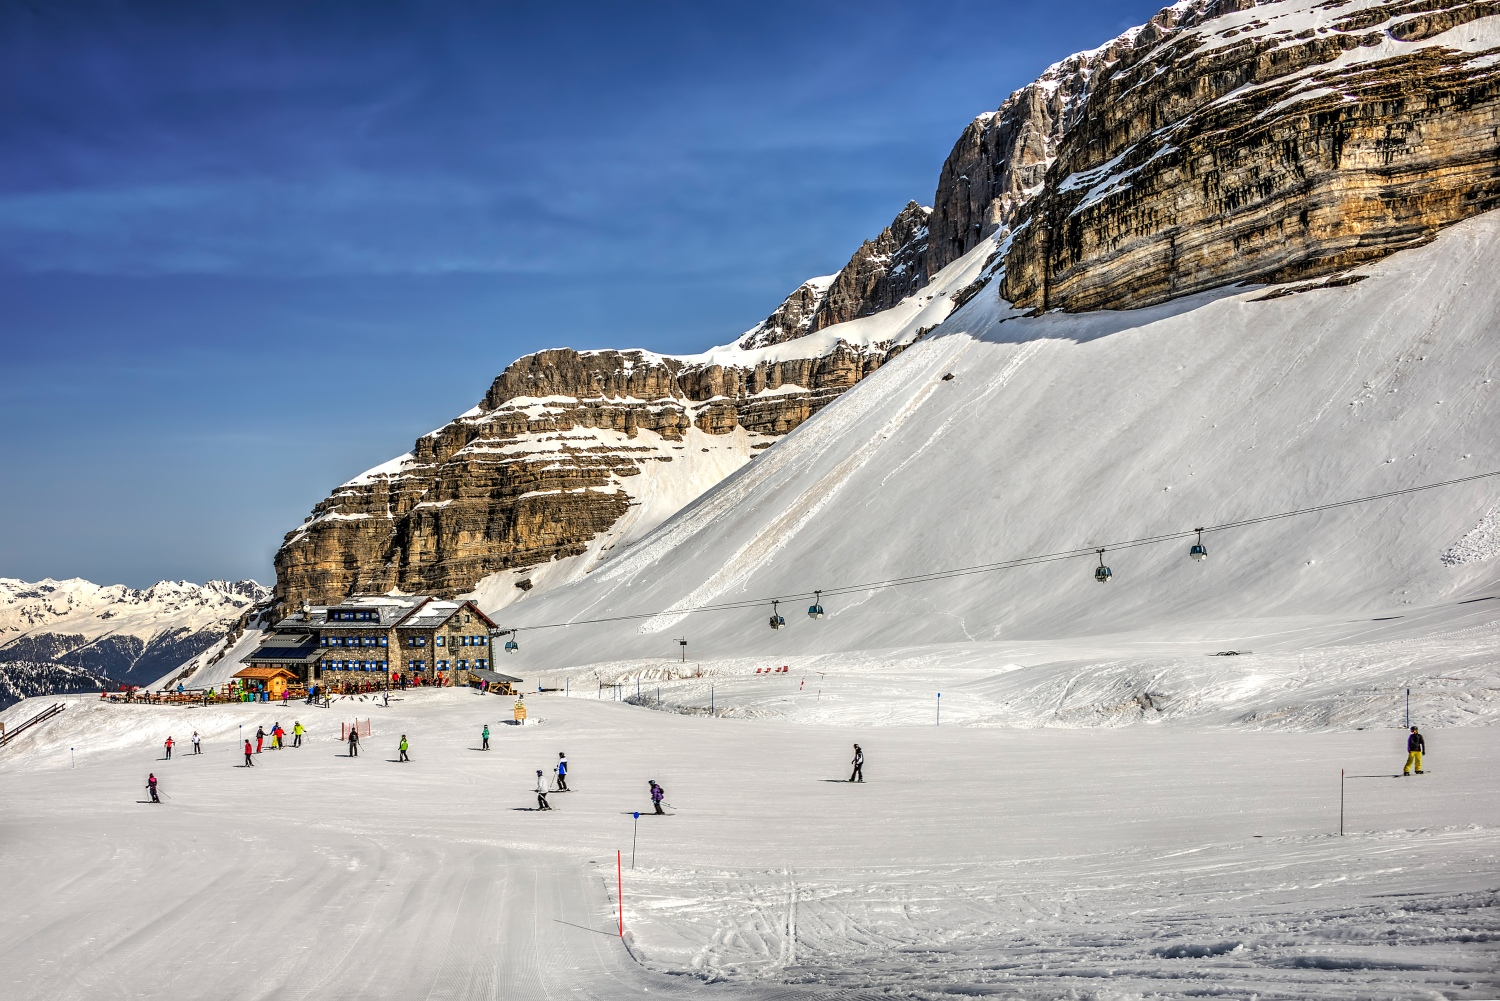 """Madonna_di_Campiglio_ski_resort_Italy_CREDIT_Getty_Images.jpg """"width ="""" 1500 """"height ="""" 1001"""